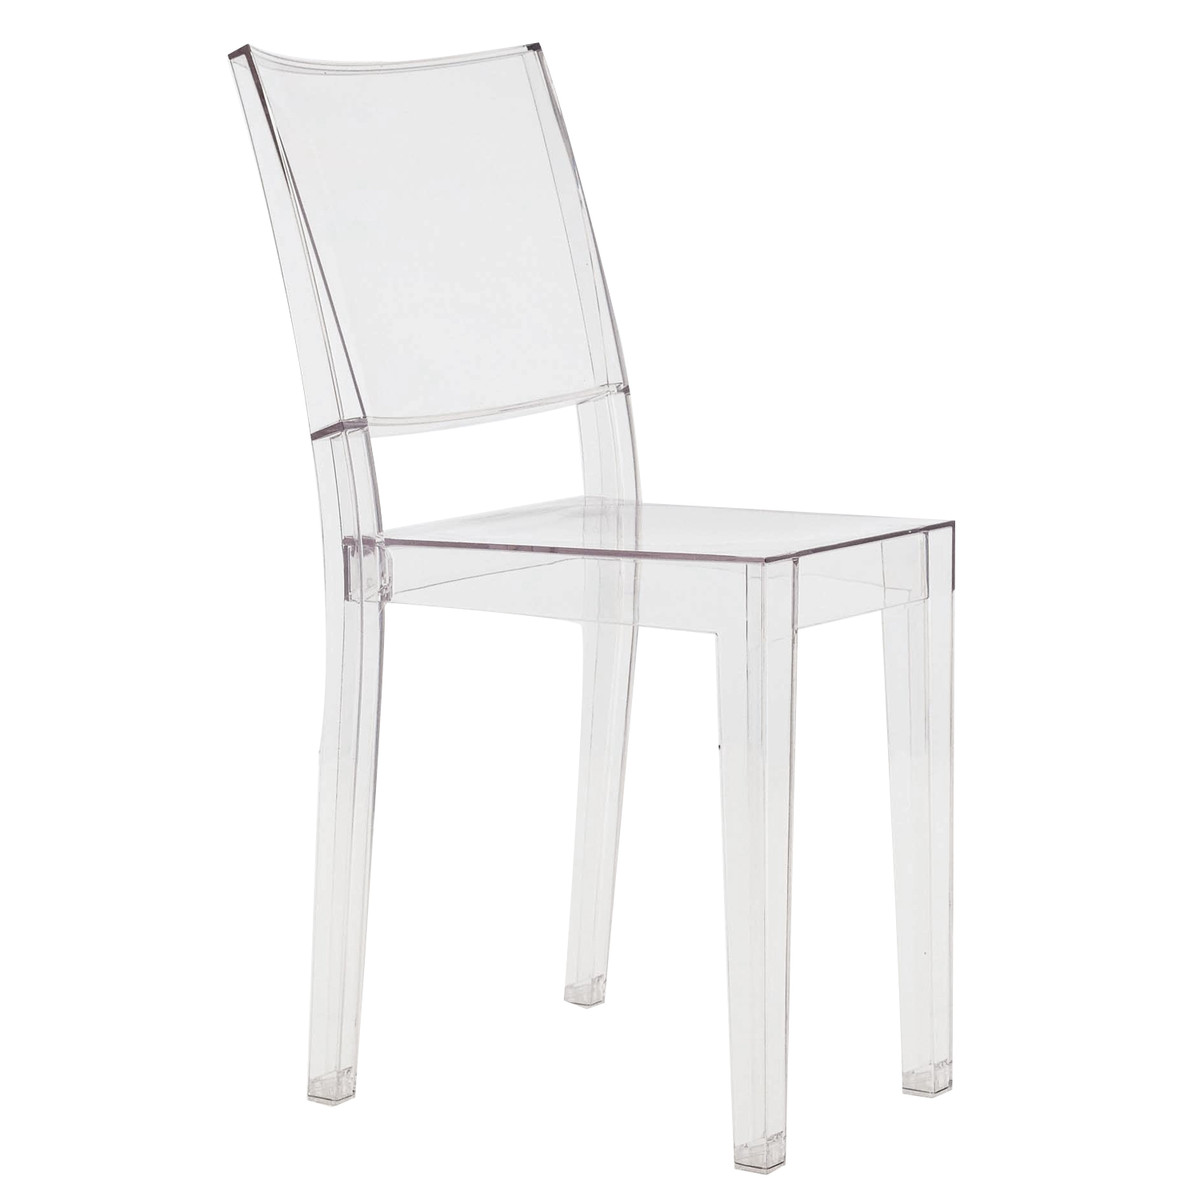 La Marie chaise Transparent (2 unités d´emballage)